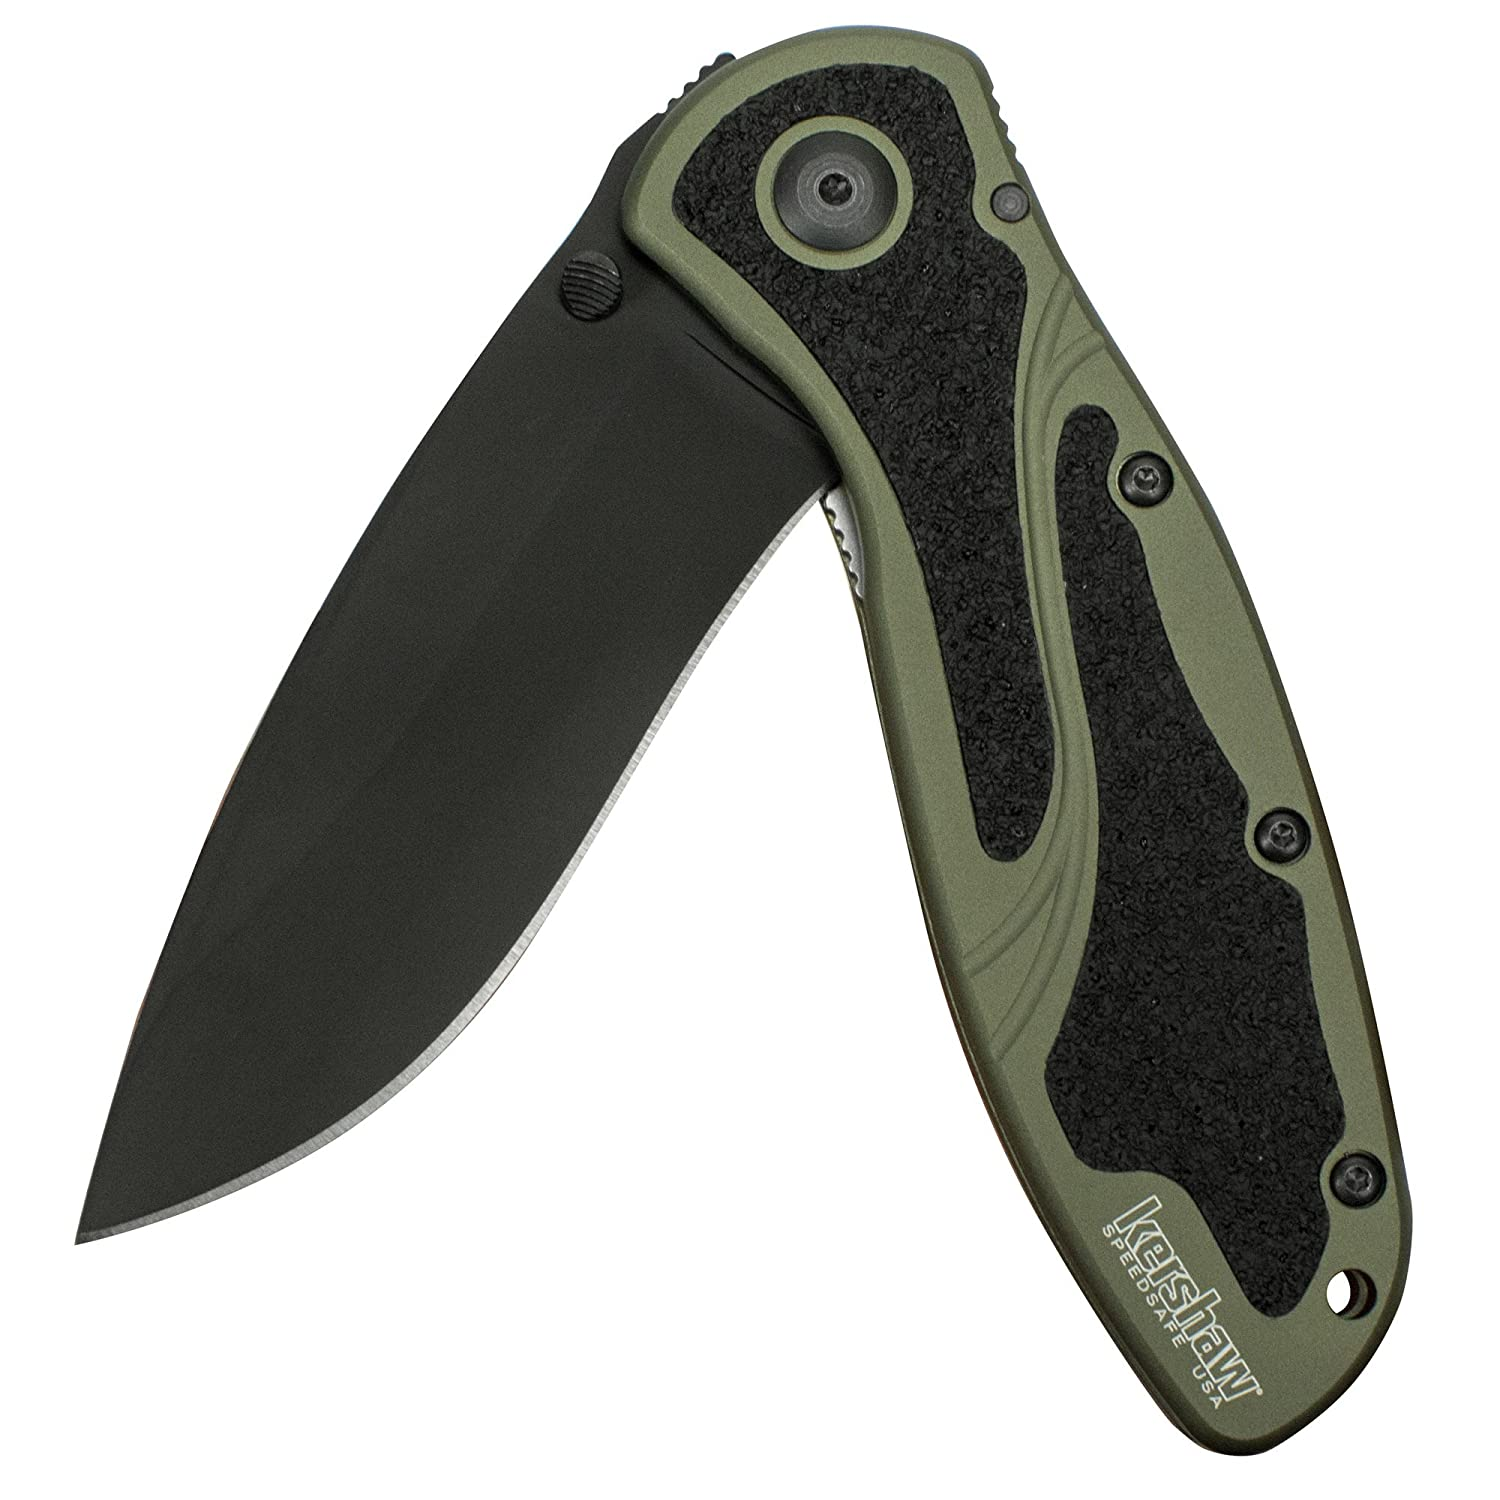 https://www.amazon.com/Kershaw-1670OLBLK-DLC-Coated-Reversible-Pocketclip/dp/B006PTMSCI?tag=filletknives-20